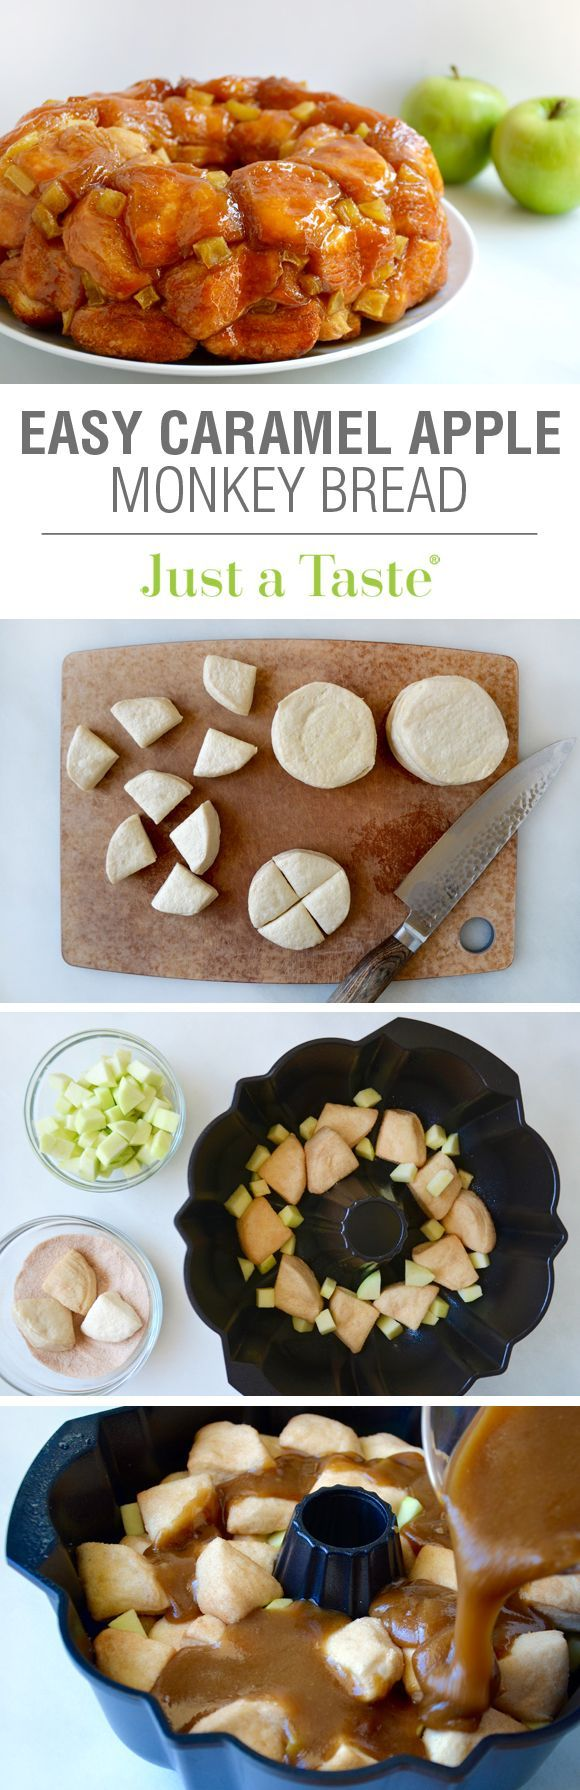 Easy Caramel Apple Monkey Bread #recipe via justataste.com